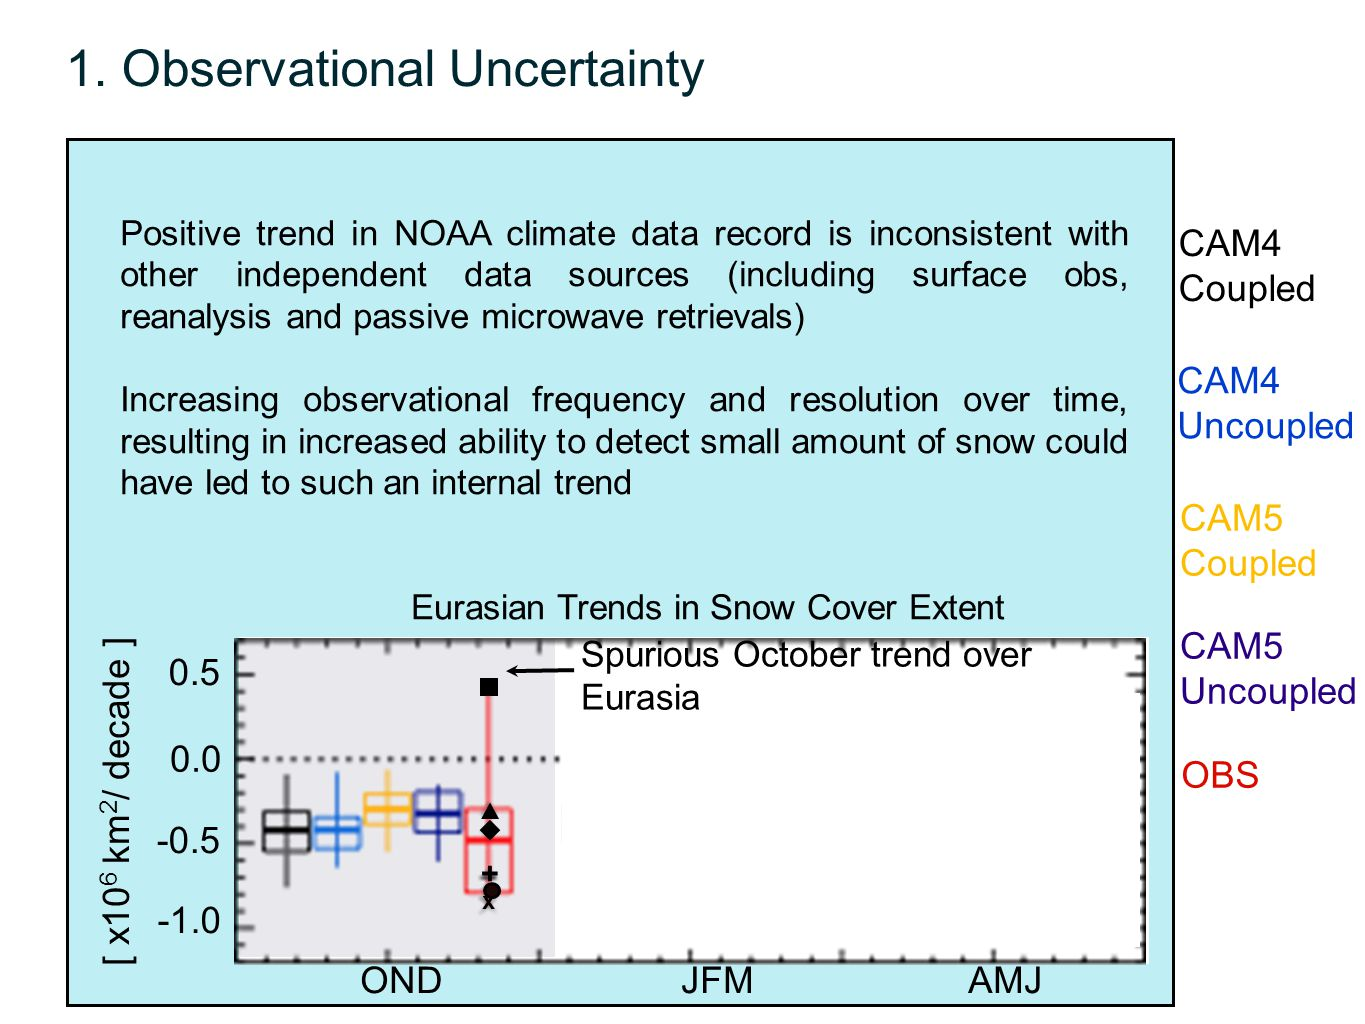 1. Observational Uncertainty